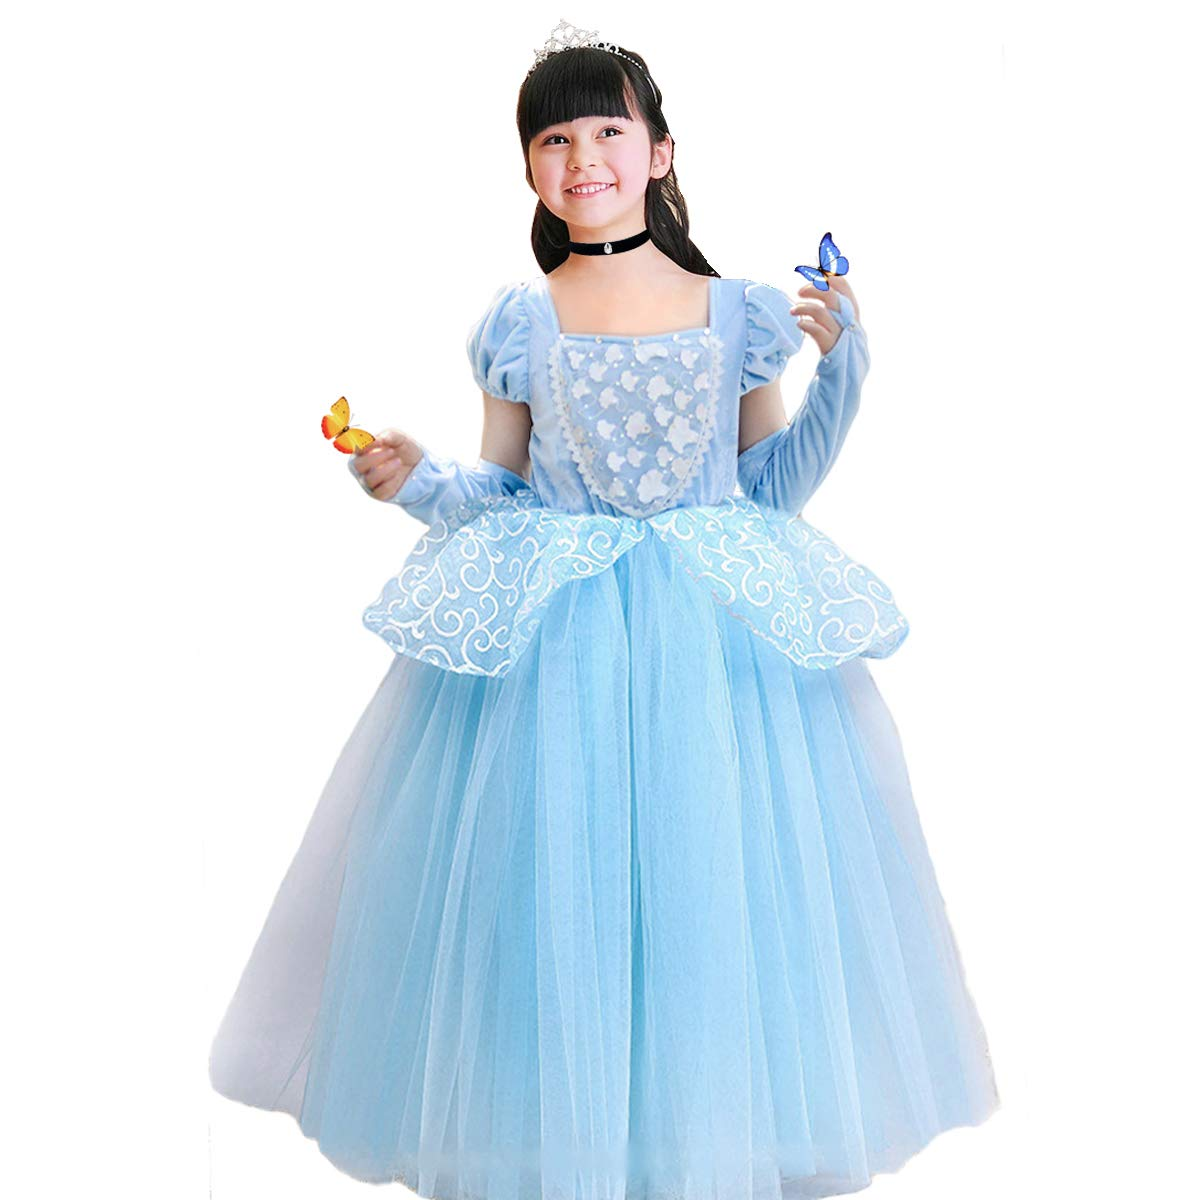 Cinderella Costumes Girls Princess Dress Up Fancy Halloween Christmas Party with Tiara and Choker Set Blue by TYHTYM (Image #2)